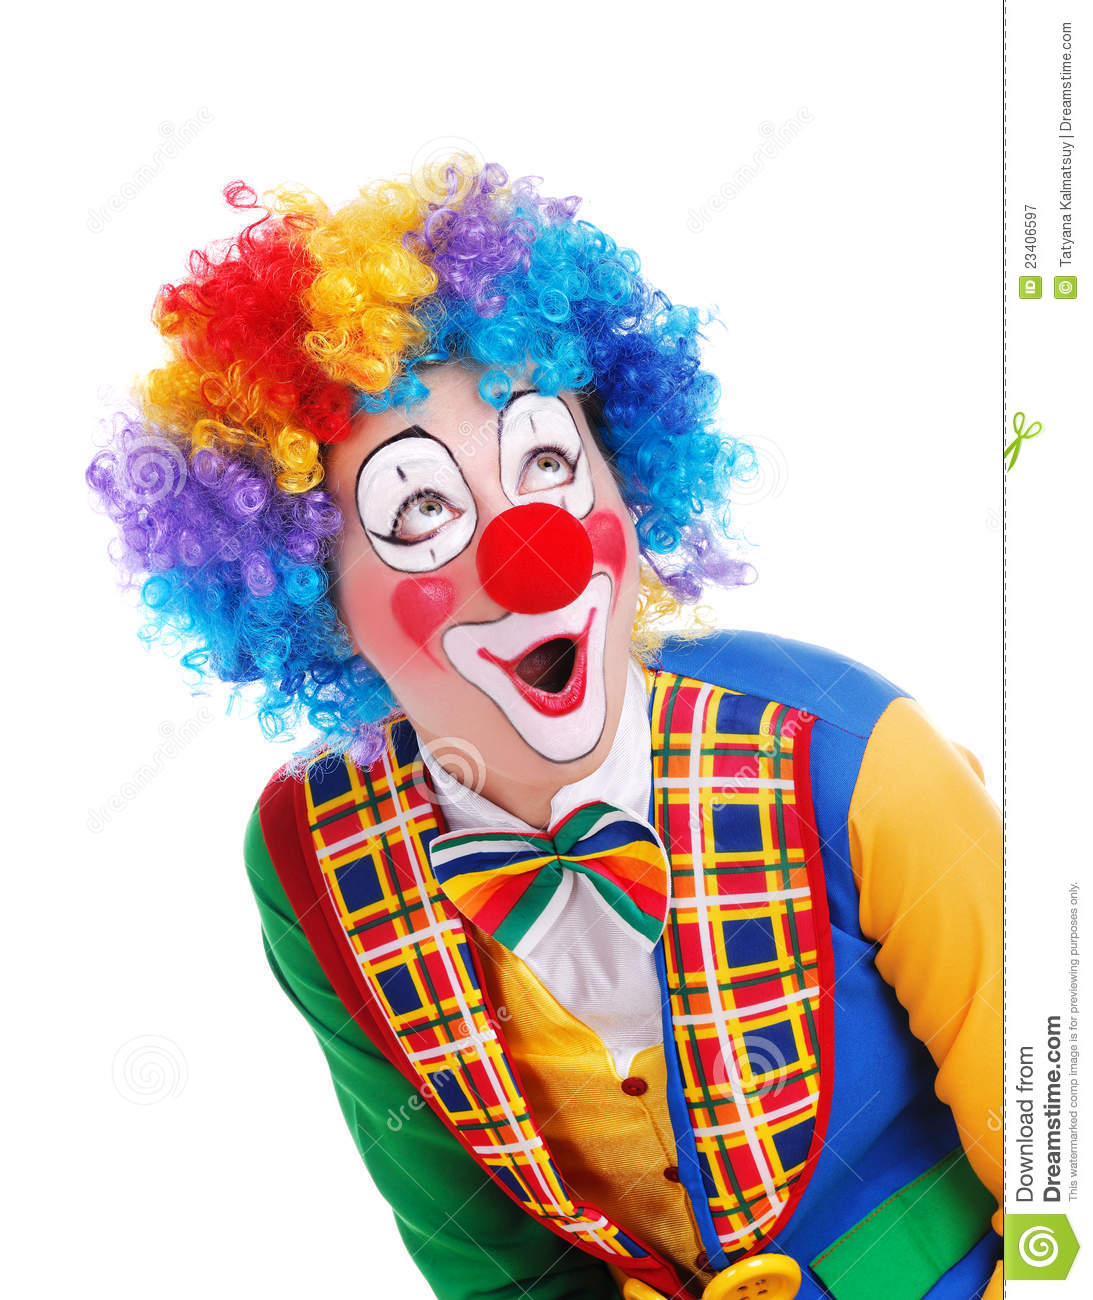 Amazed Clown Royalty Free Stock Photography - Image: 23406597